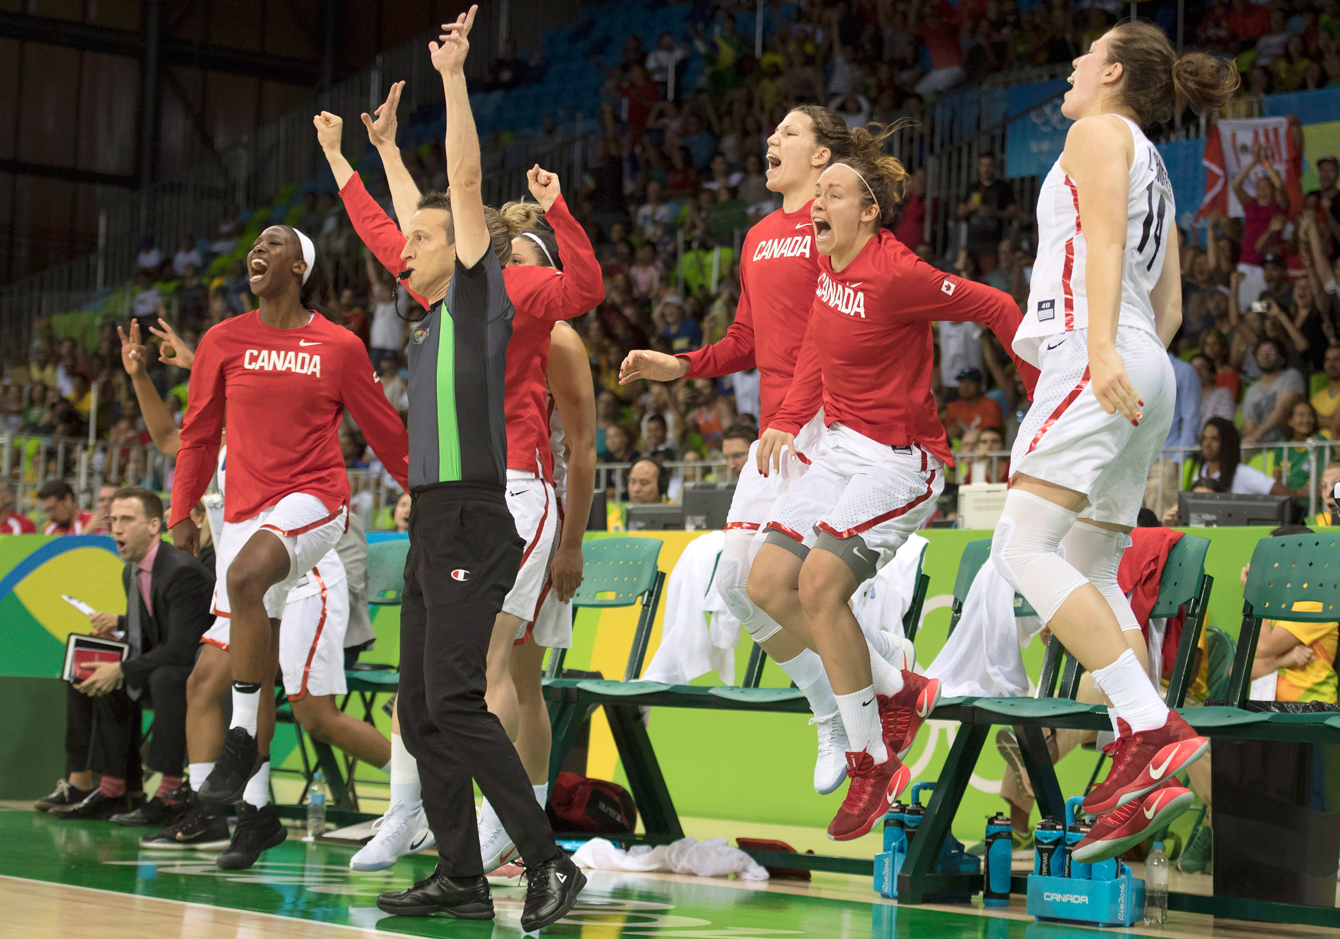 Canada's (left to right) Tamara Tatham, Michelle Plouffe, Shona Thorburn and Katherine Plouffe leap in the air as they celebrate the game-winning shot to defeat Serbia in their preliminary round basketball match at the 2016 Summer Olympics Monday August 8, 2016 in Rio de Janeiro, Brazil. THE CANADIAN PRESS/Frank Gunn